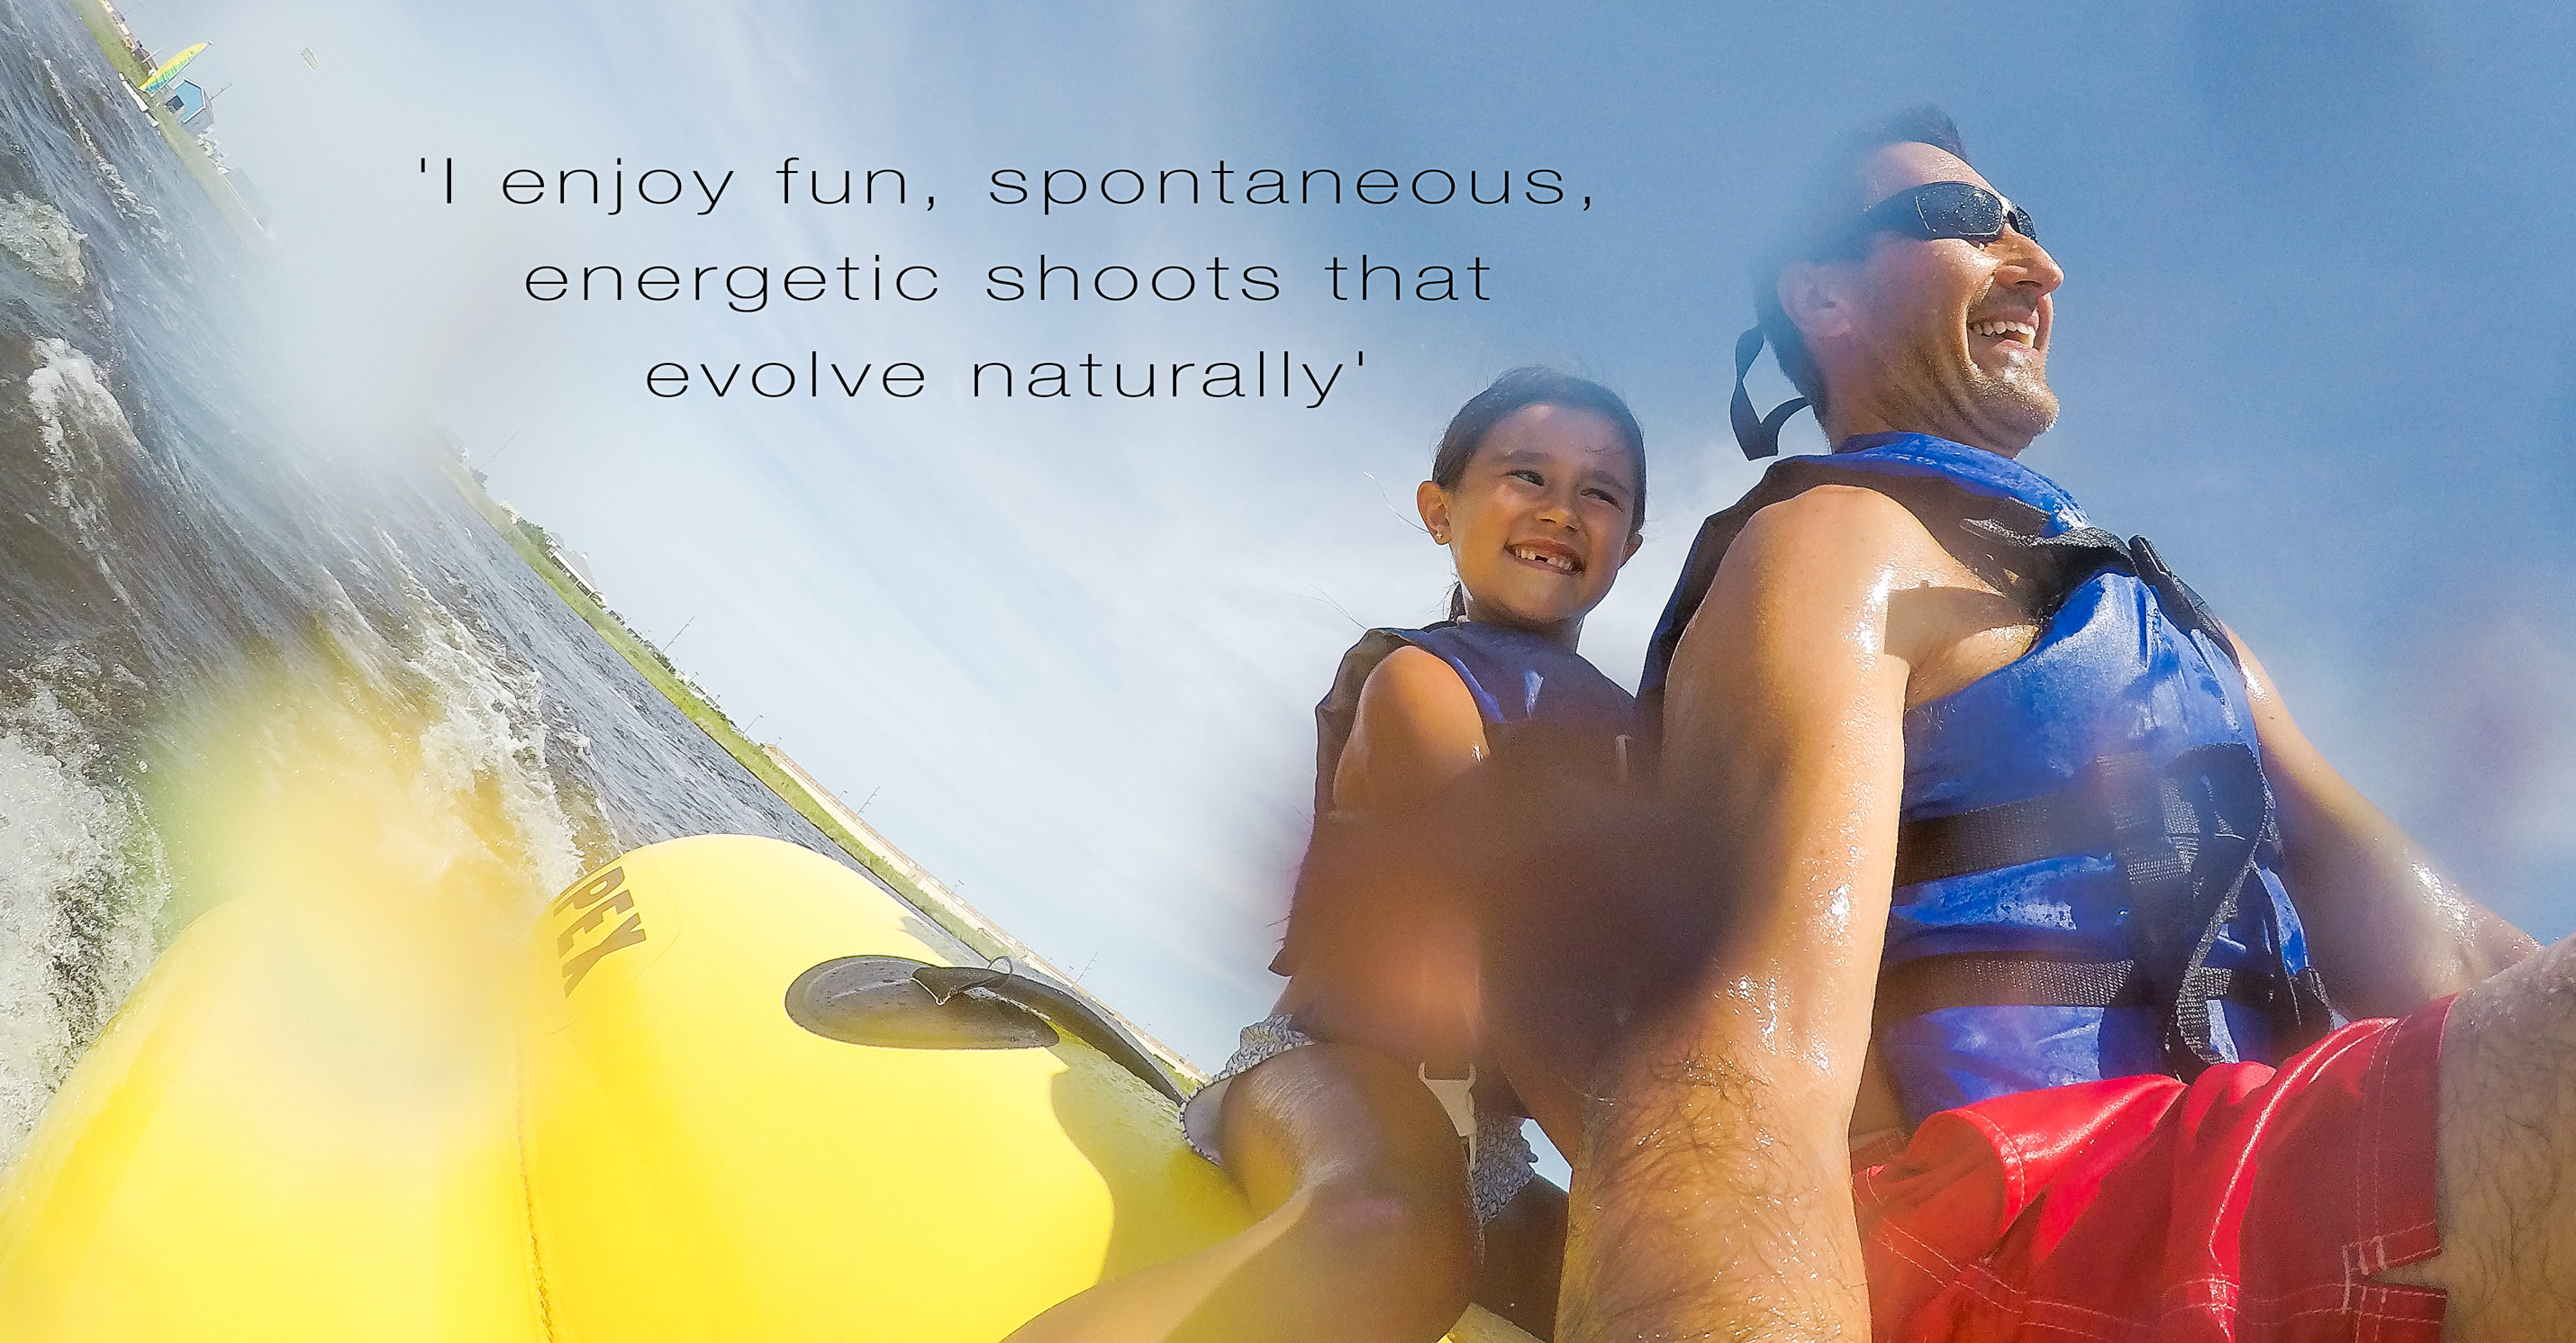 Self Portrait with Daughter riding a BananaBoat at OBX North Carolina.jpg